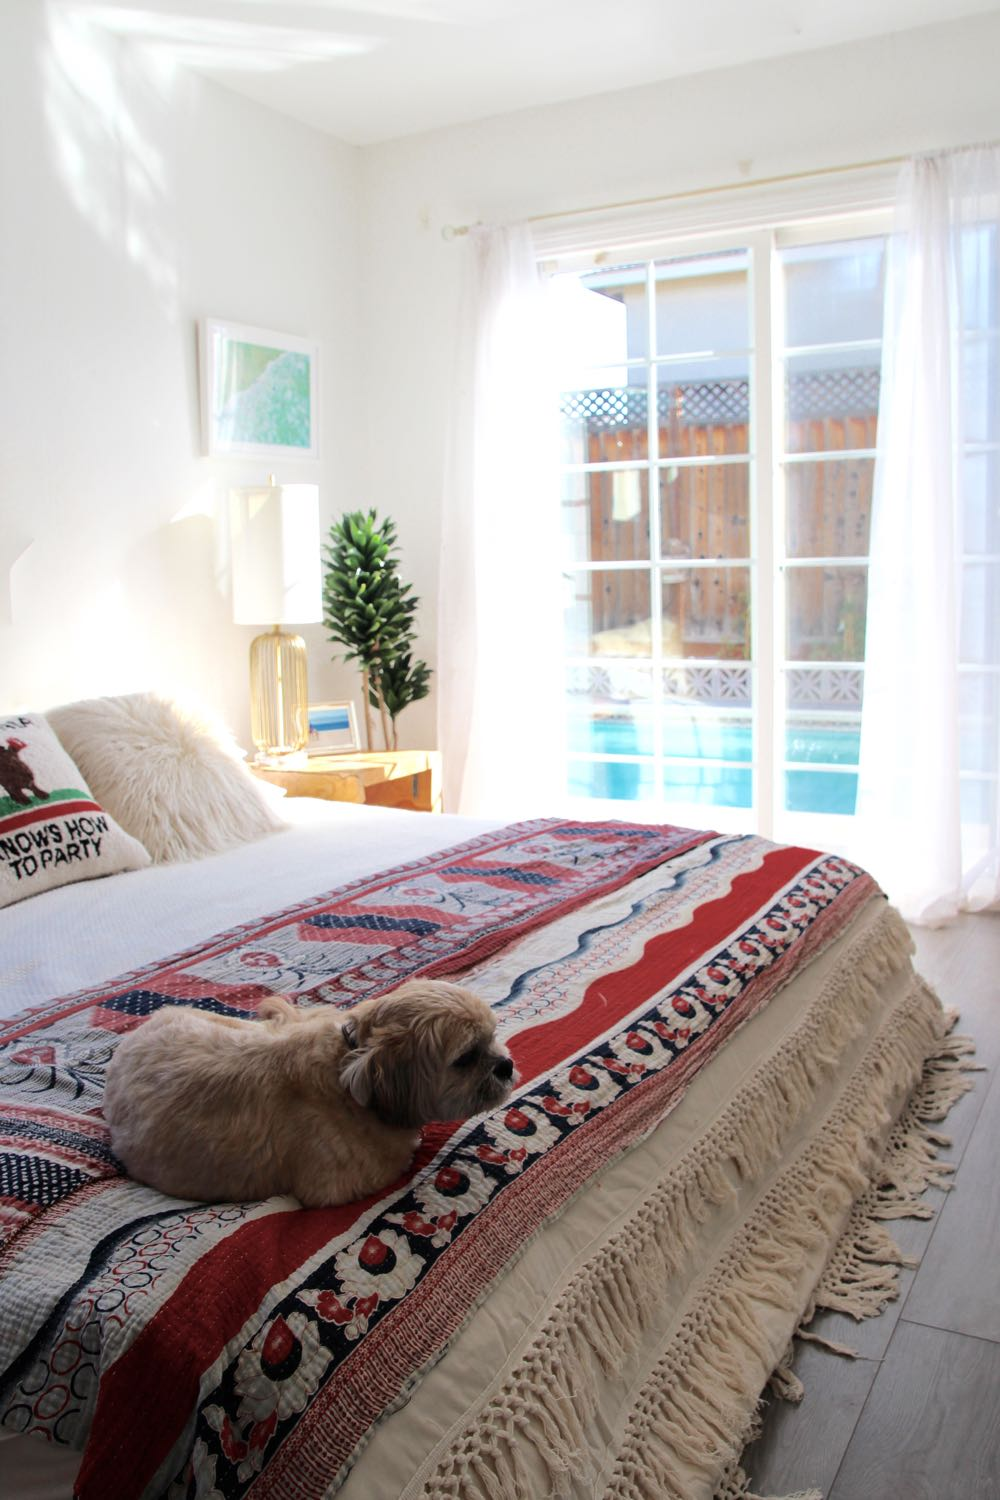 Urban Outfitters fringed duvet cover by Magical Thinking